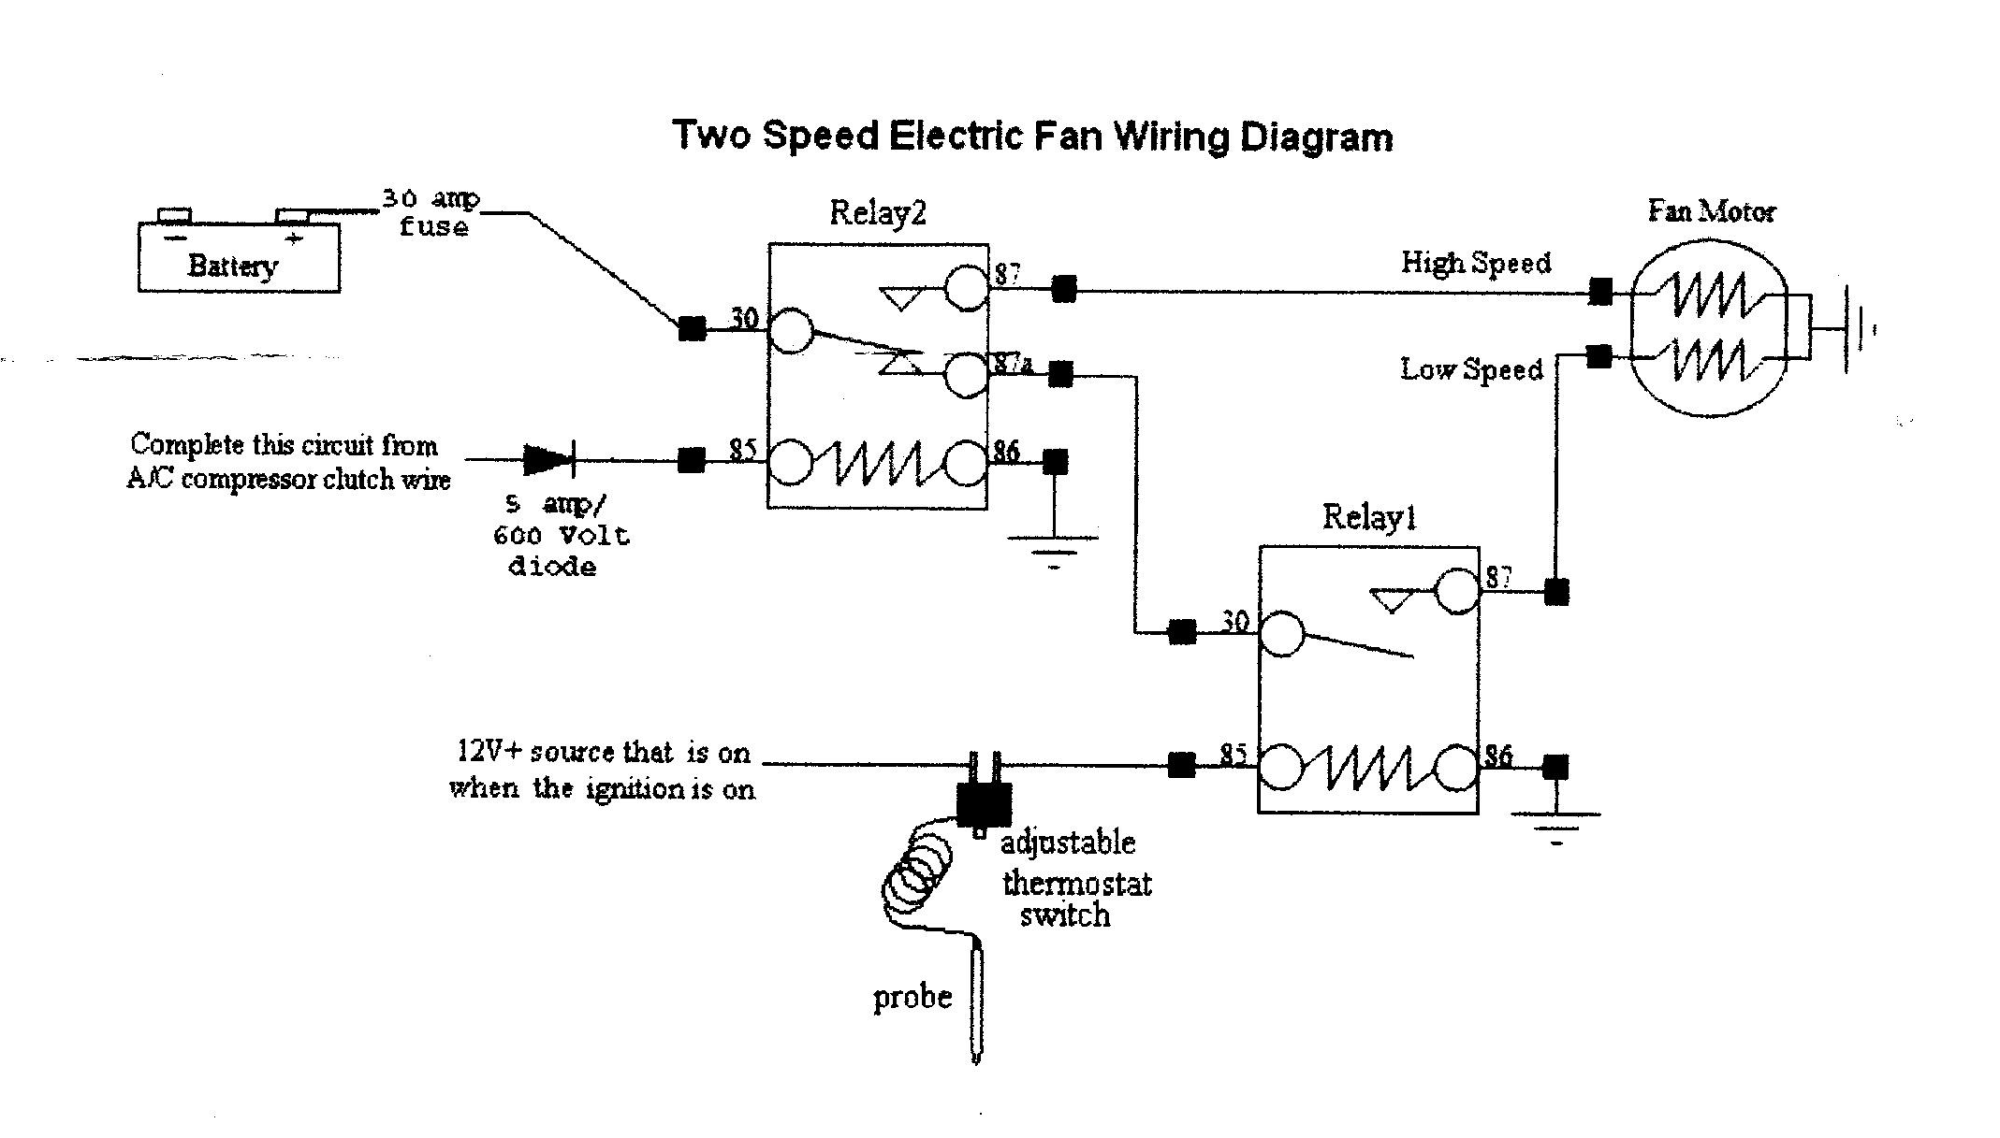 hight resolution of camry cooling fans wiring diagram wiring diagram 1996 toyota camry radiator fan wiring diagram wiring library1996